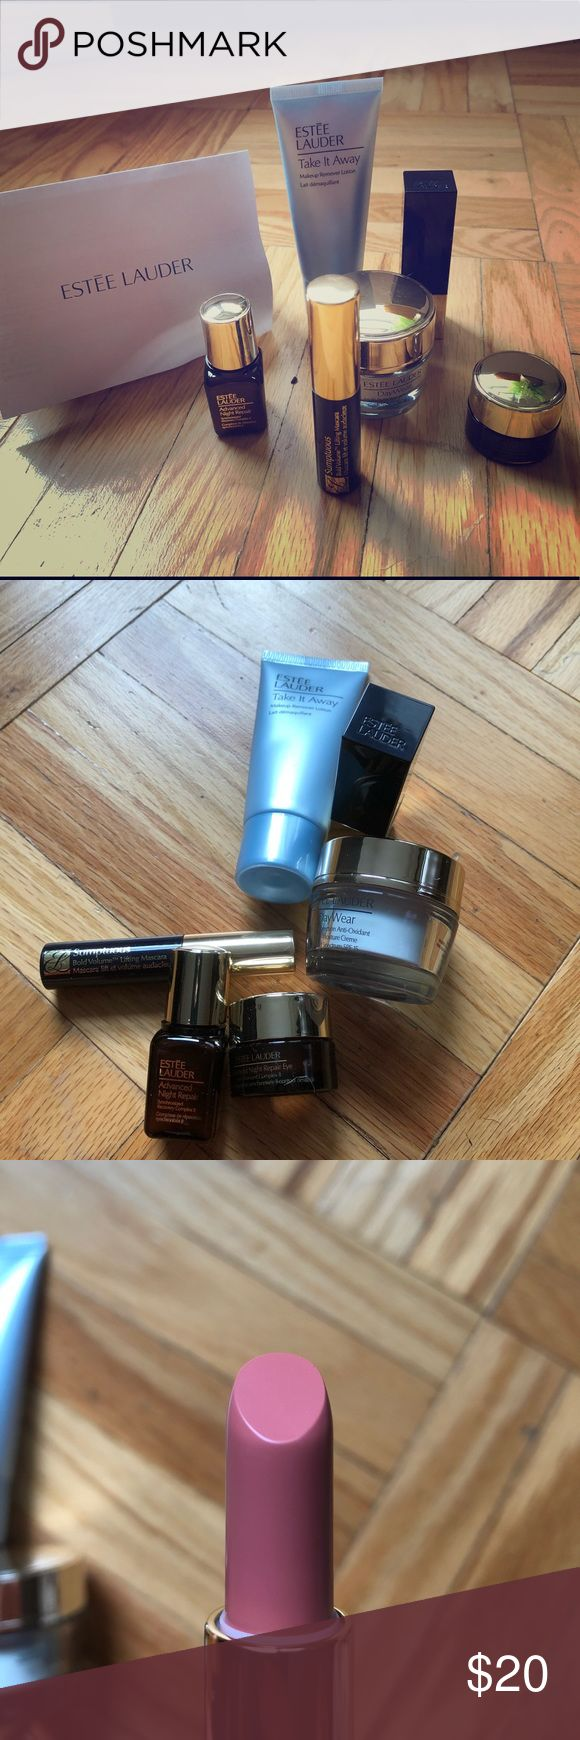 Estée Lauder travel kit All brand new. Travel sizes of: 📍Take it Away Makeup Remover Lotion📍Advanced Night Repair 📍DayWear Moisturizer📍Advanced Night Repair Eye 📍Sumptuous Bold Volume Lifting Mascara📍Pure Color Envy Sculpting Lipstick in Desirable. All made in USA, UK and Belgium. Estee Lauder Makeup